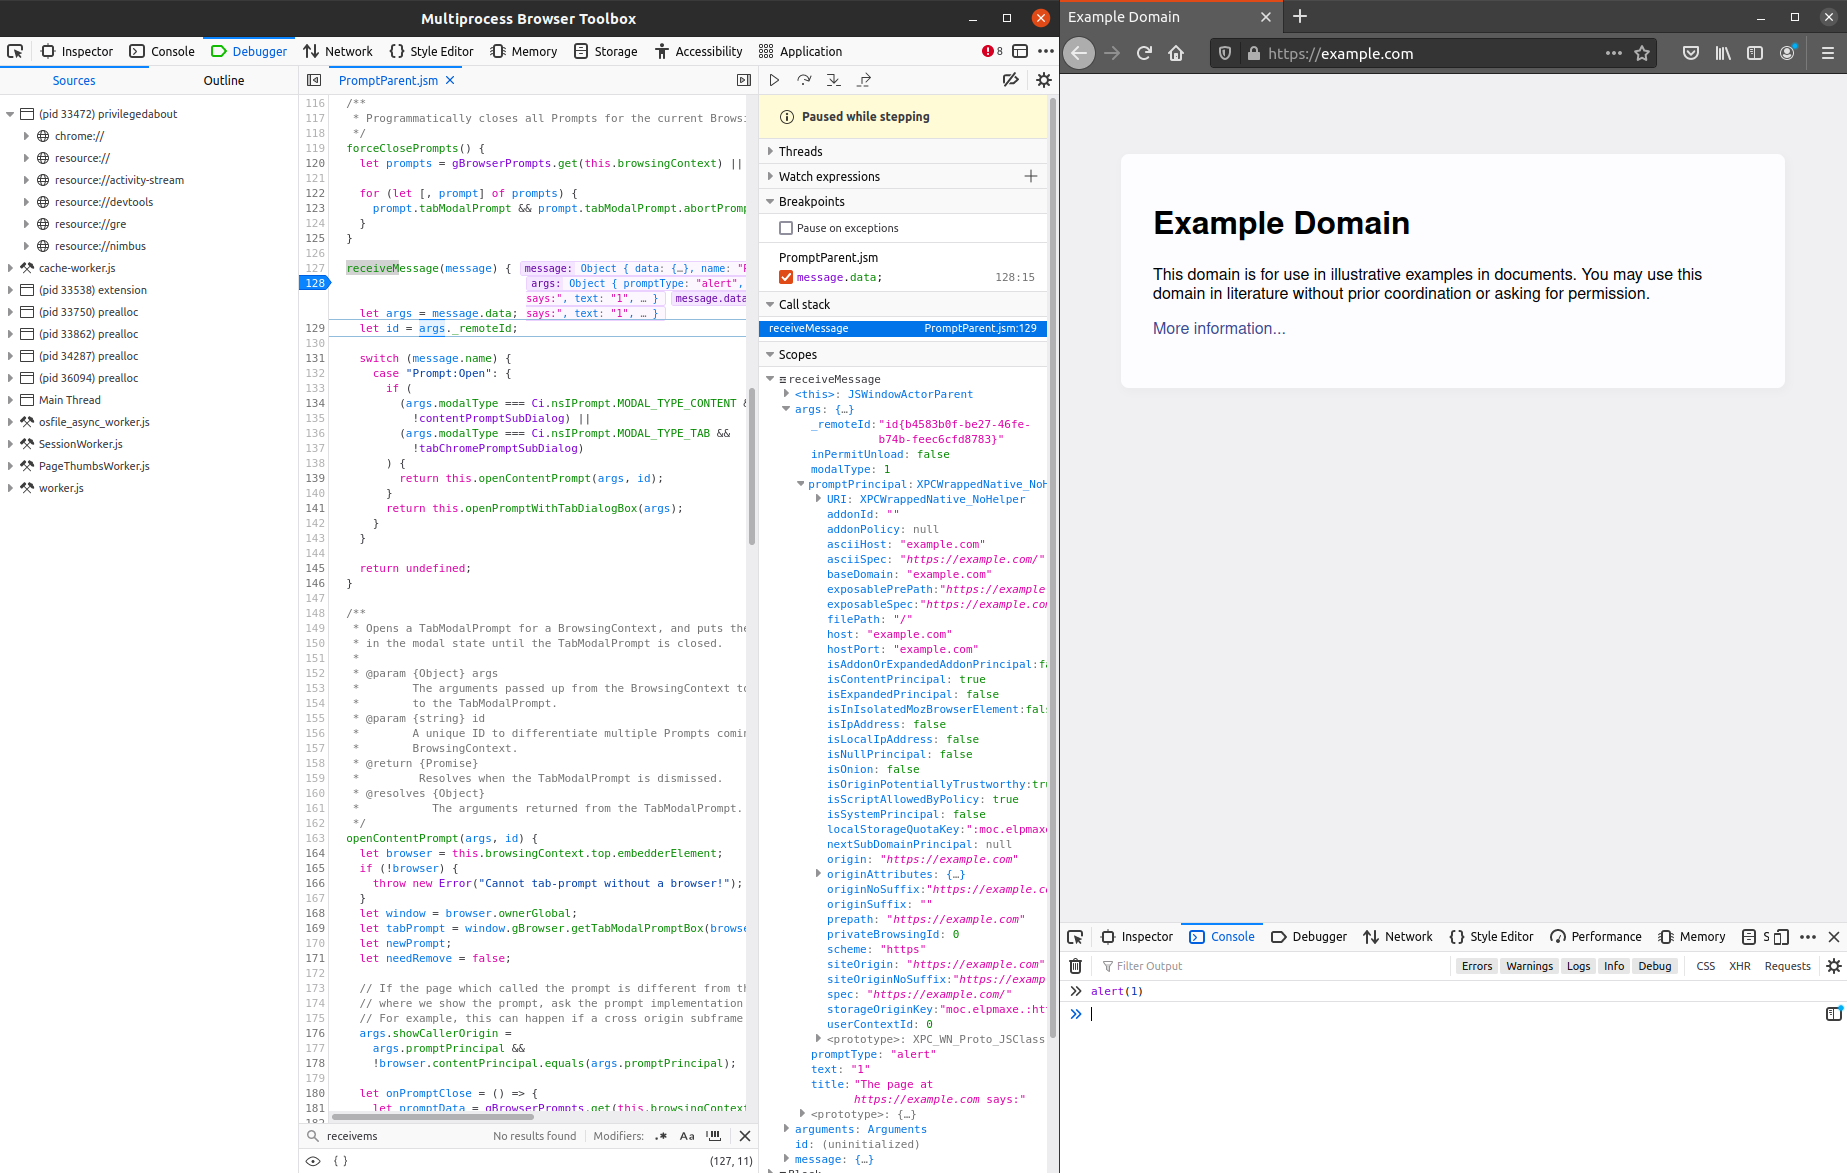 Hitting a breakpoint in Firefox's parent process using Firefox Developer Tools (left)